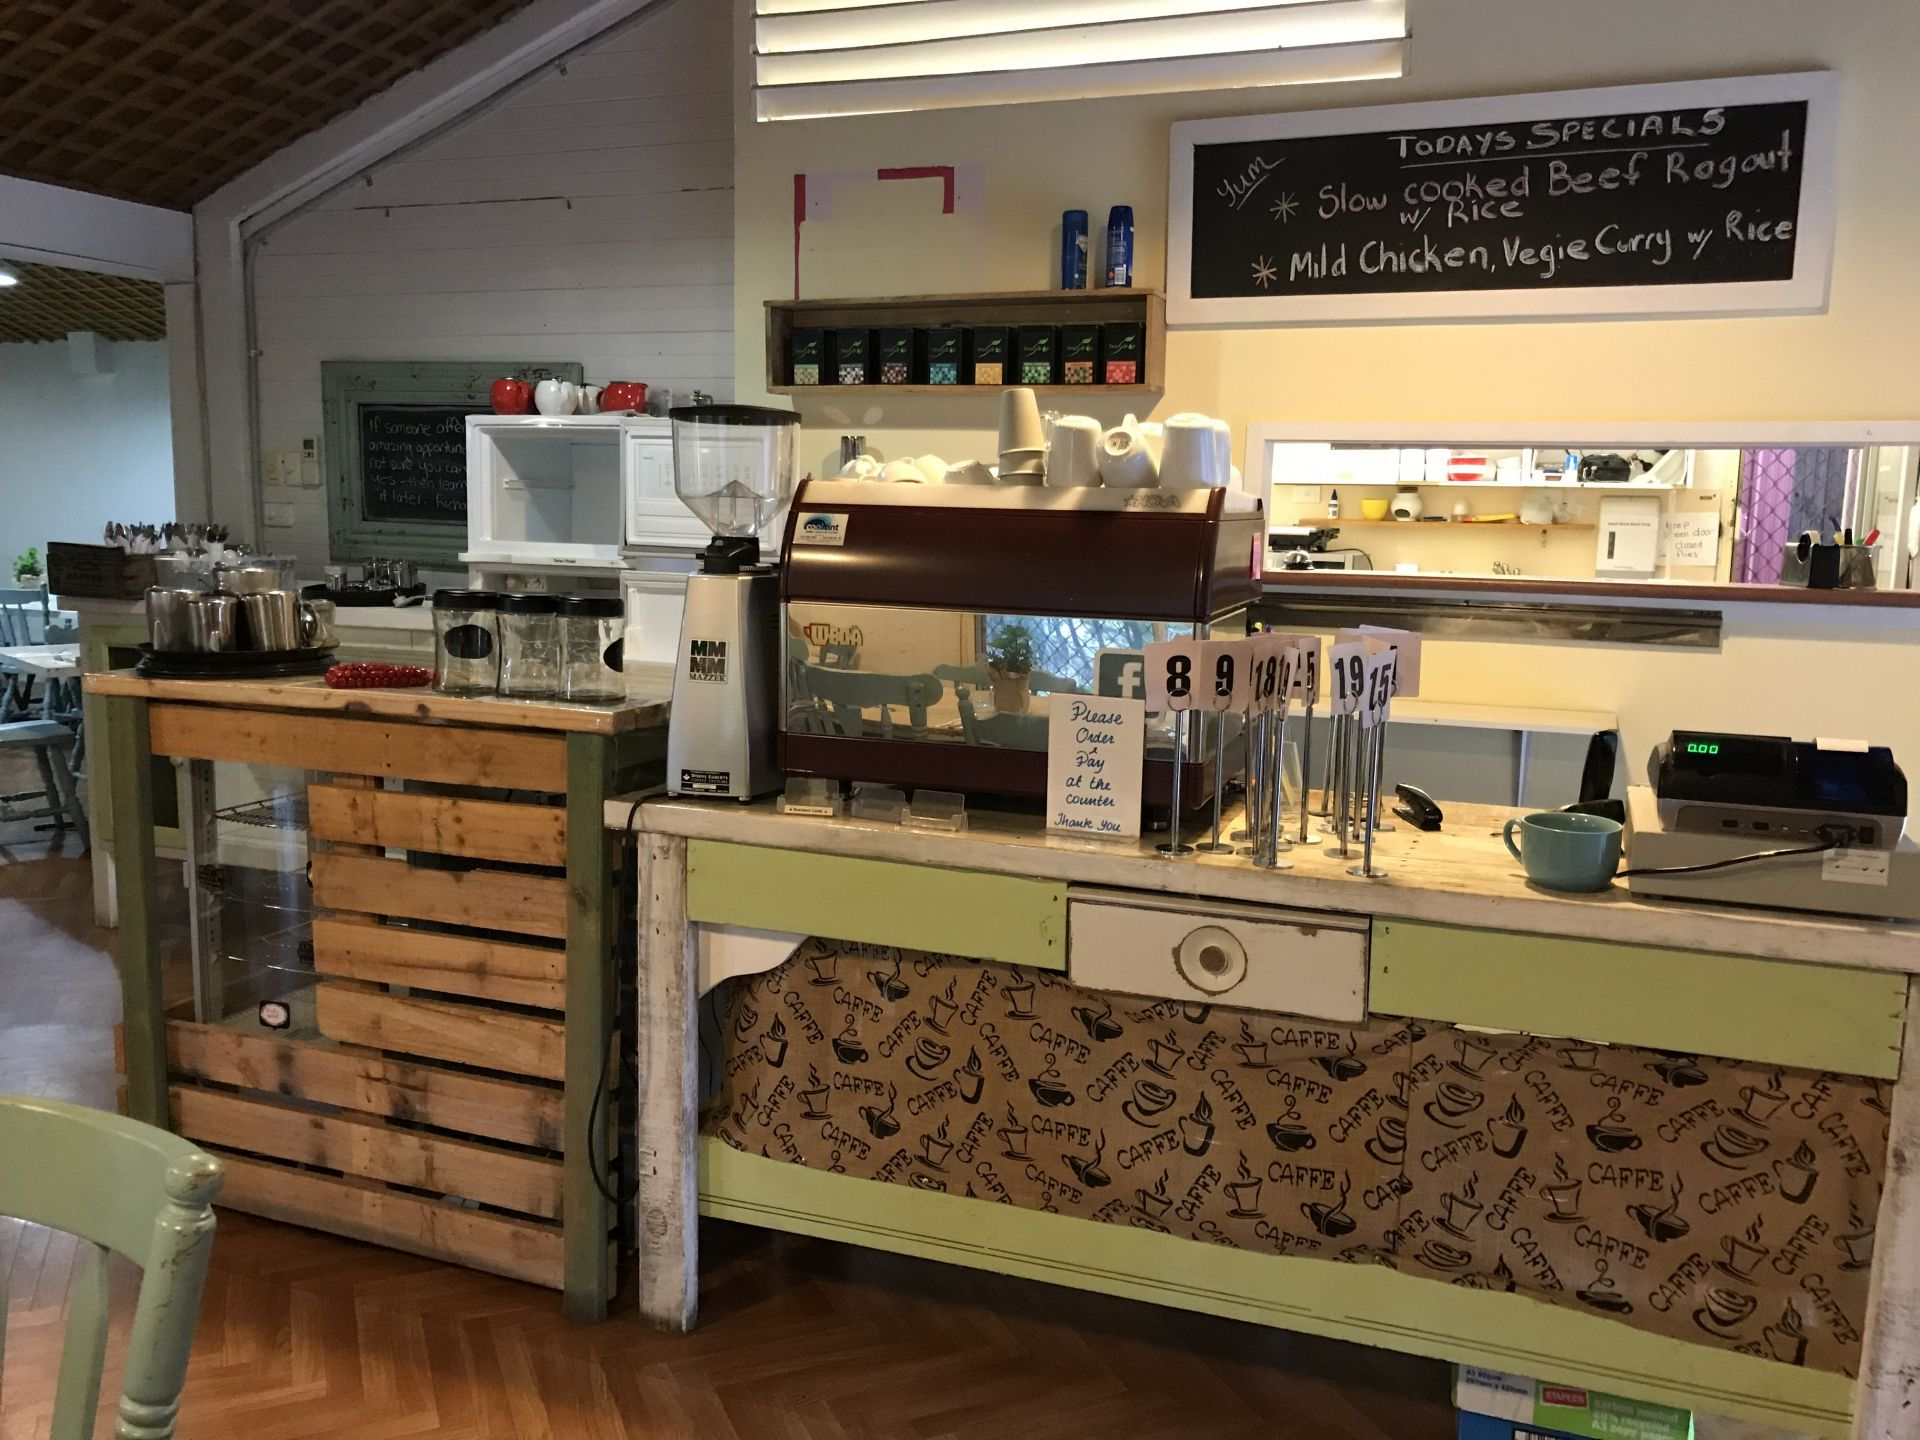 MAKE AN OFFER FOR THIS WELL ESTABLISHED CAFÉ IN TOURIST LOCATION NEAR ORANGE